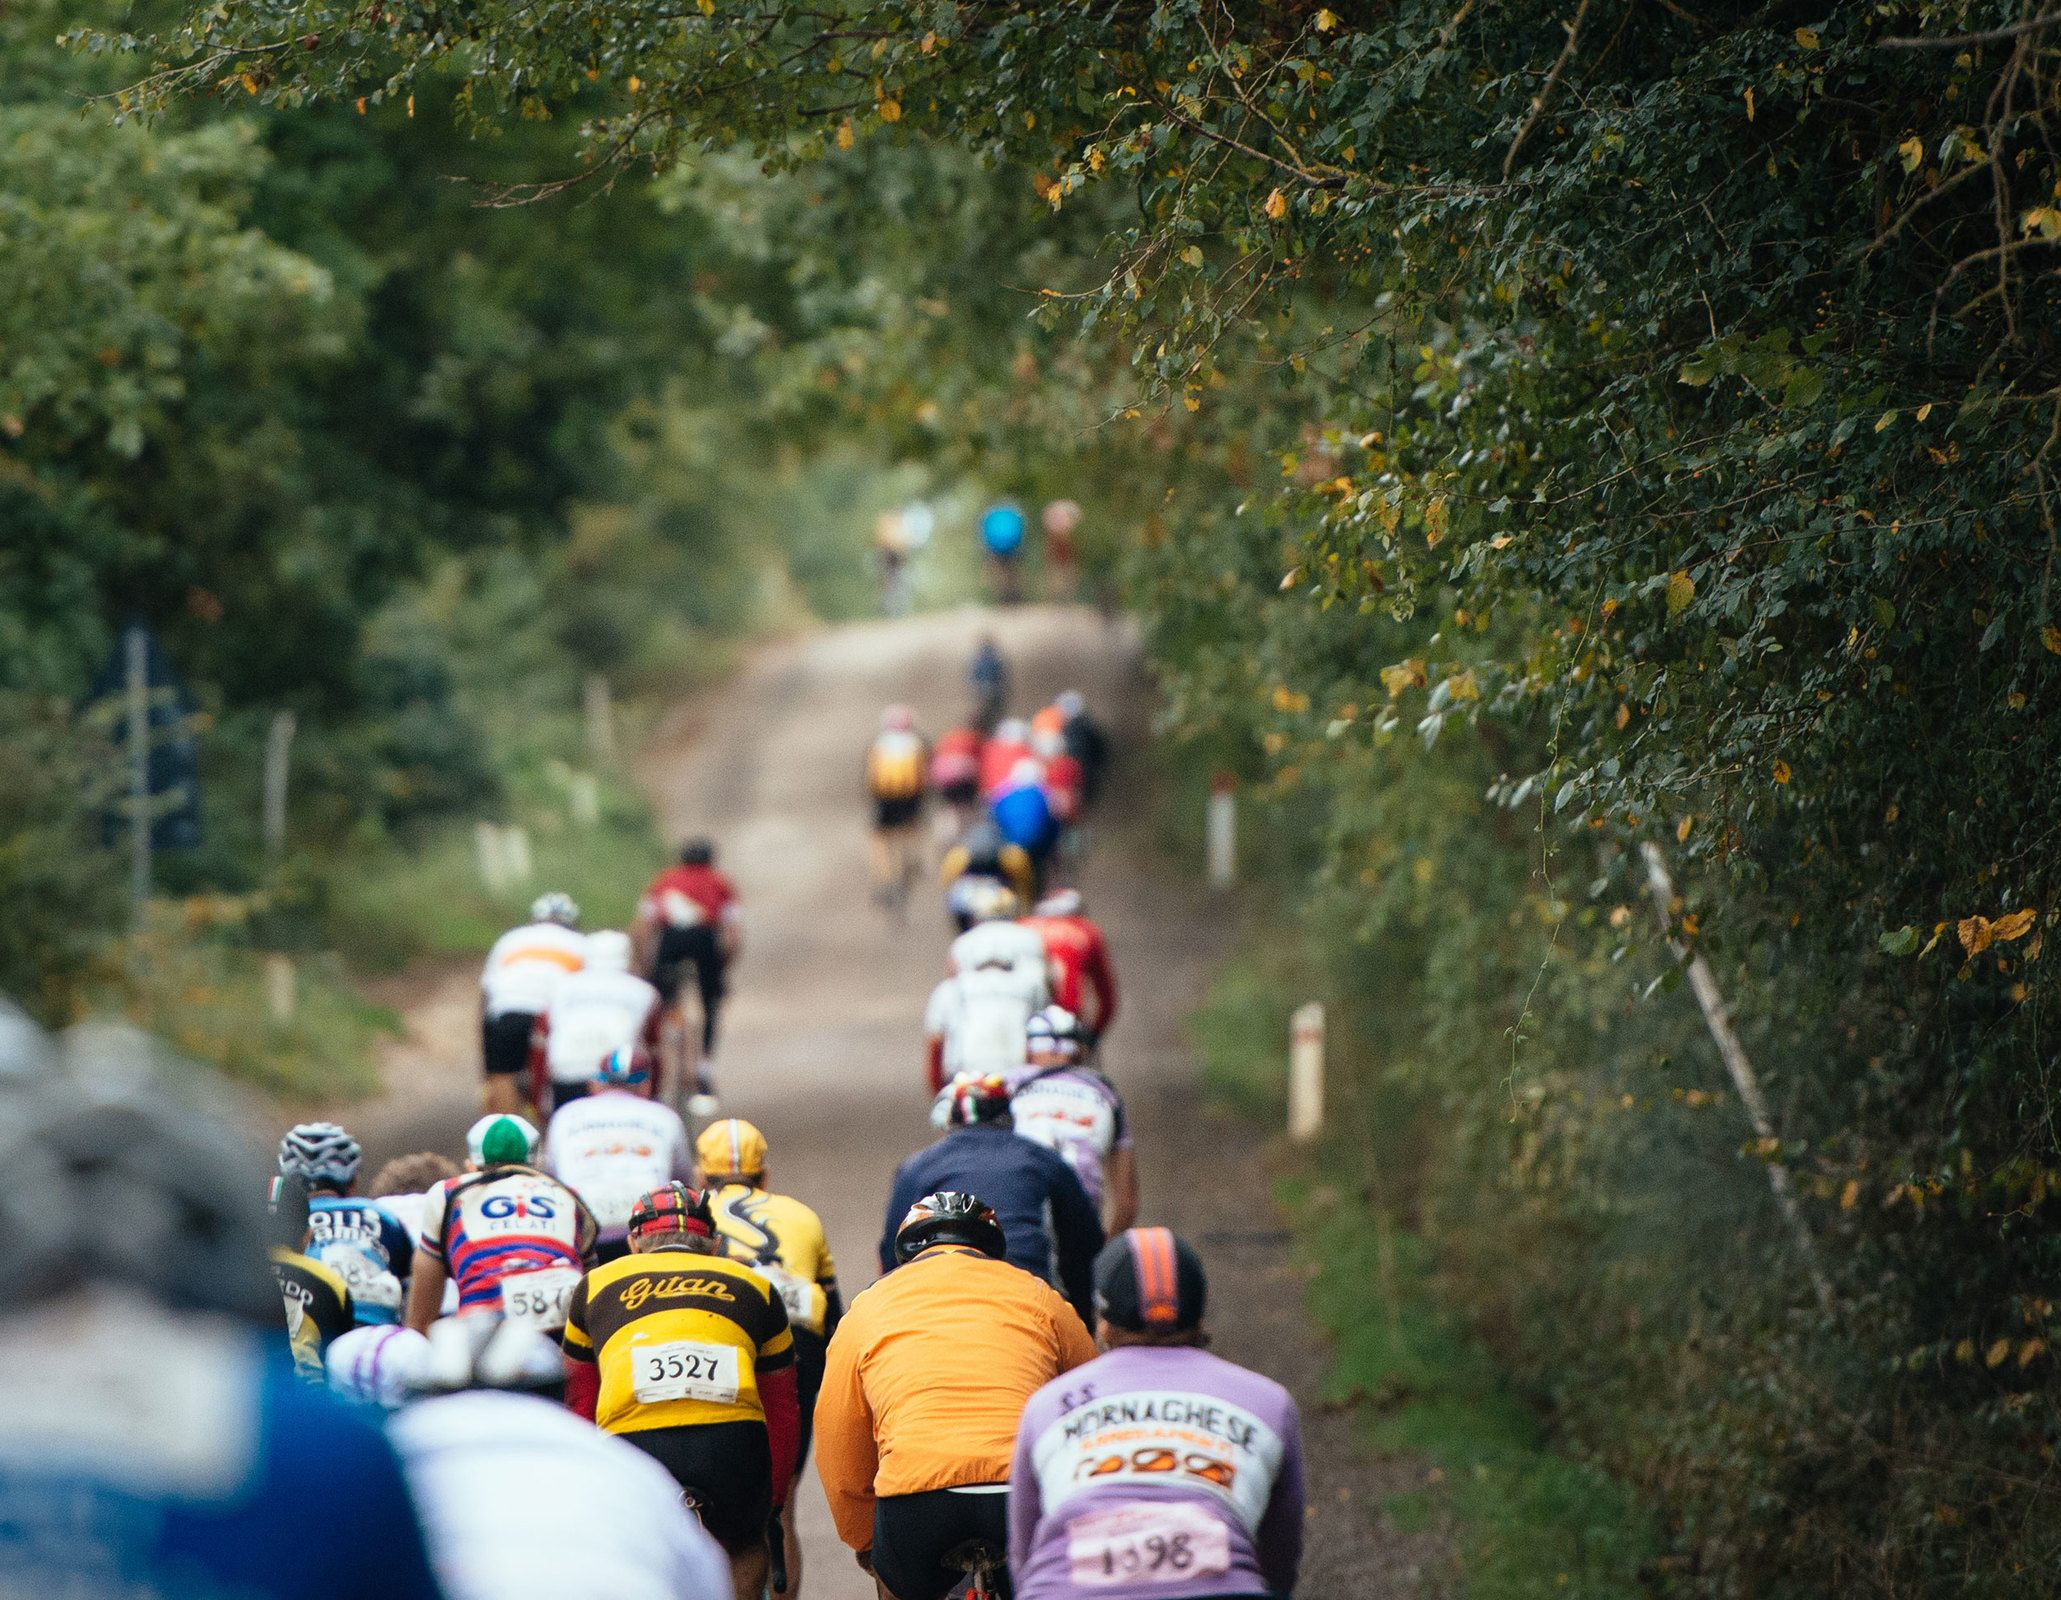 Rolling out with over 5,000 other riders onto a closed course is always a special experience.